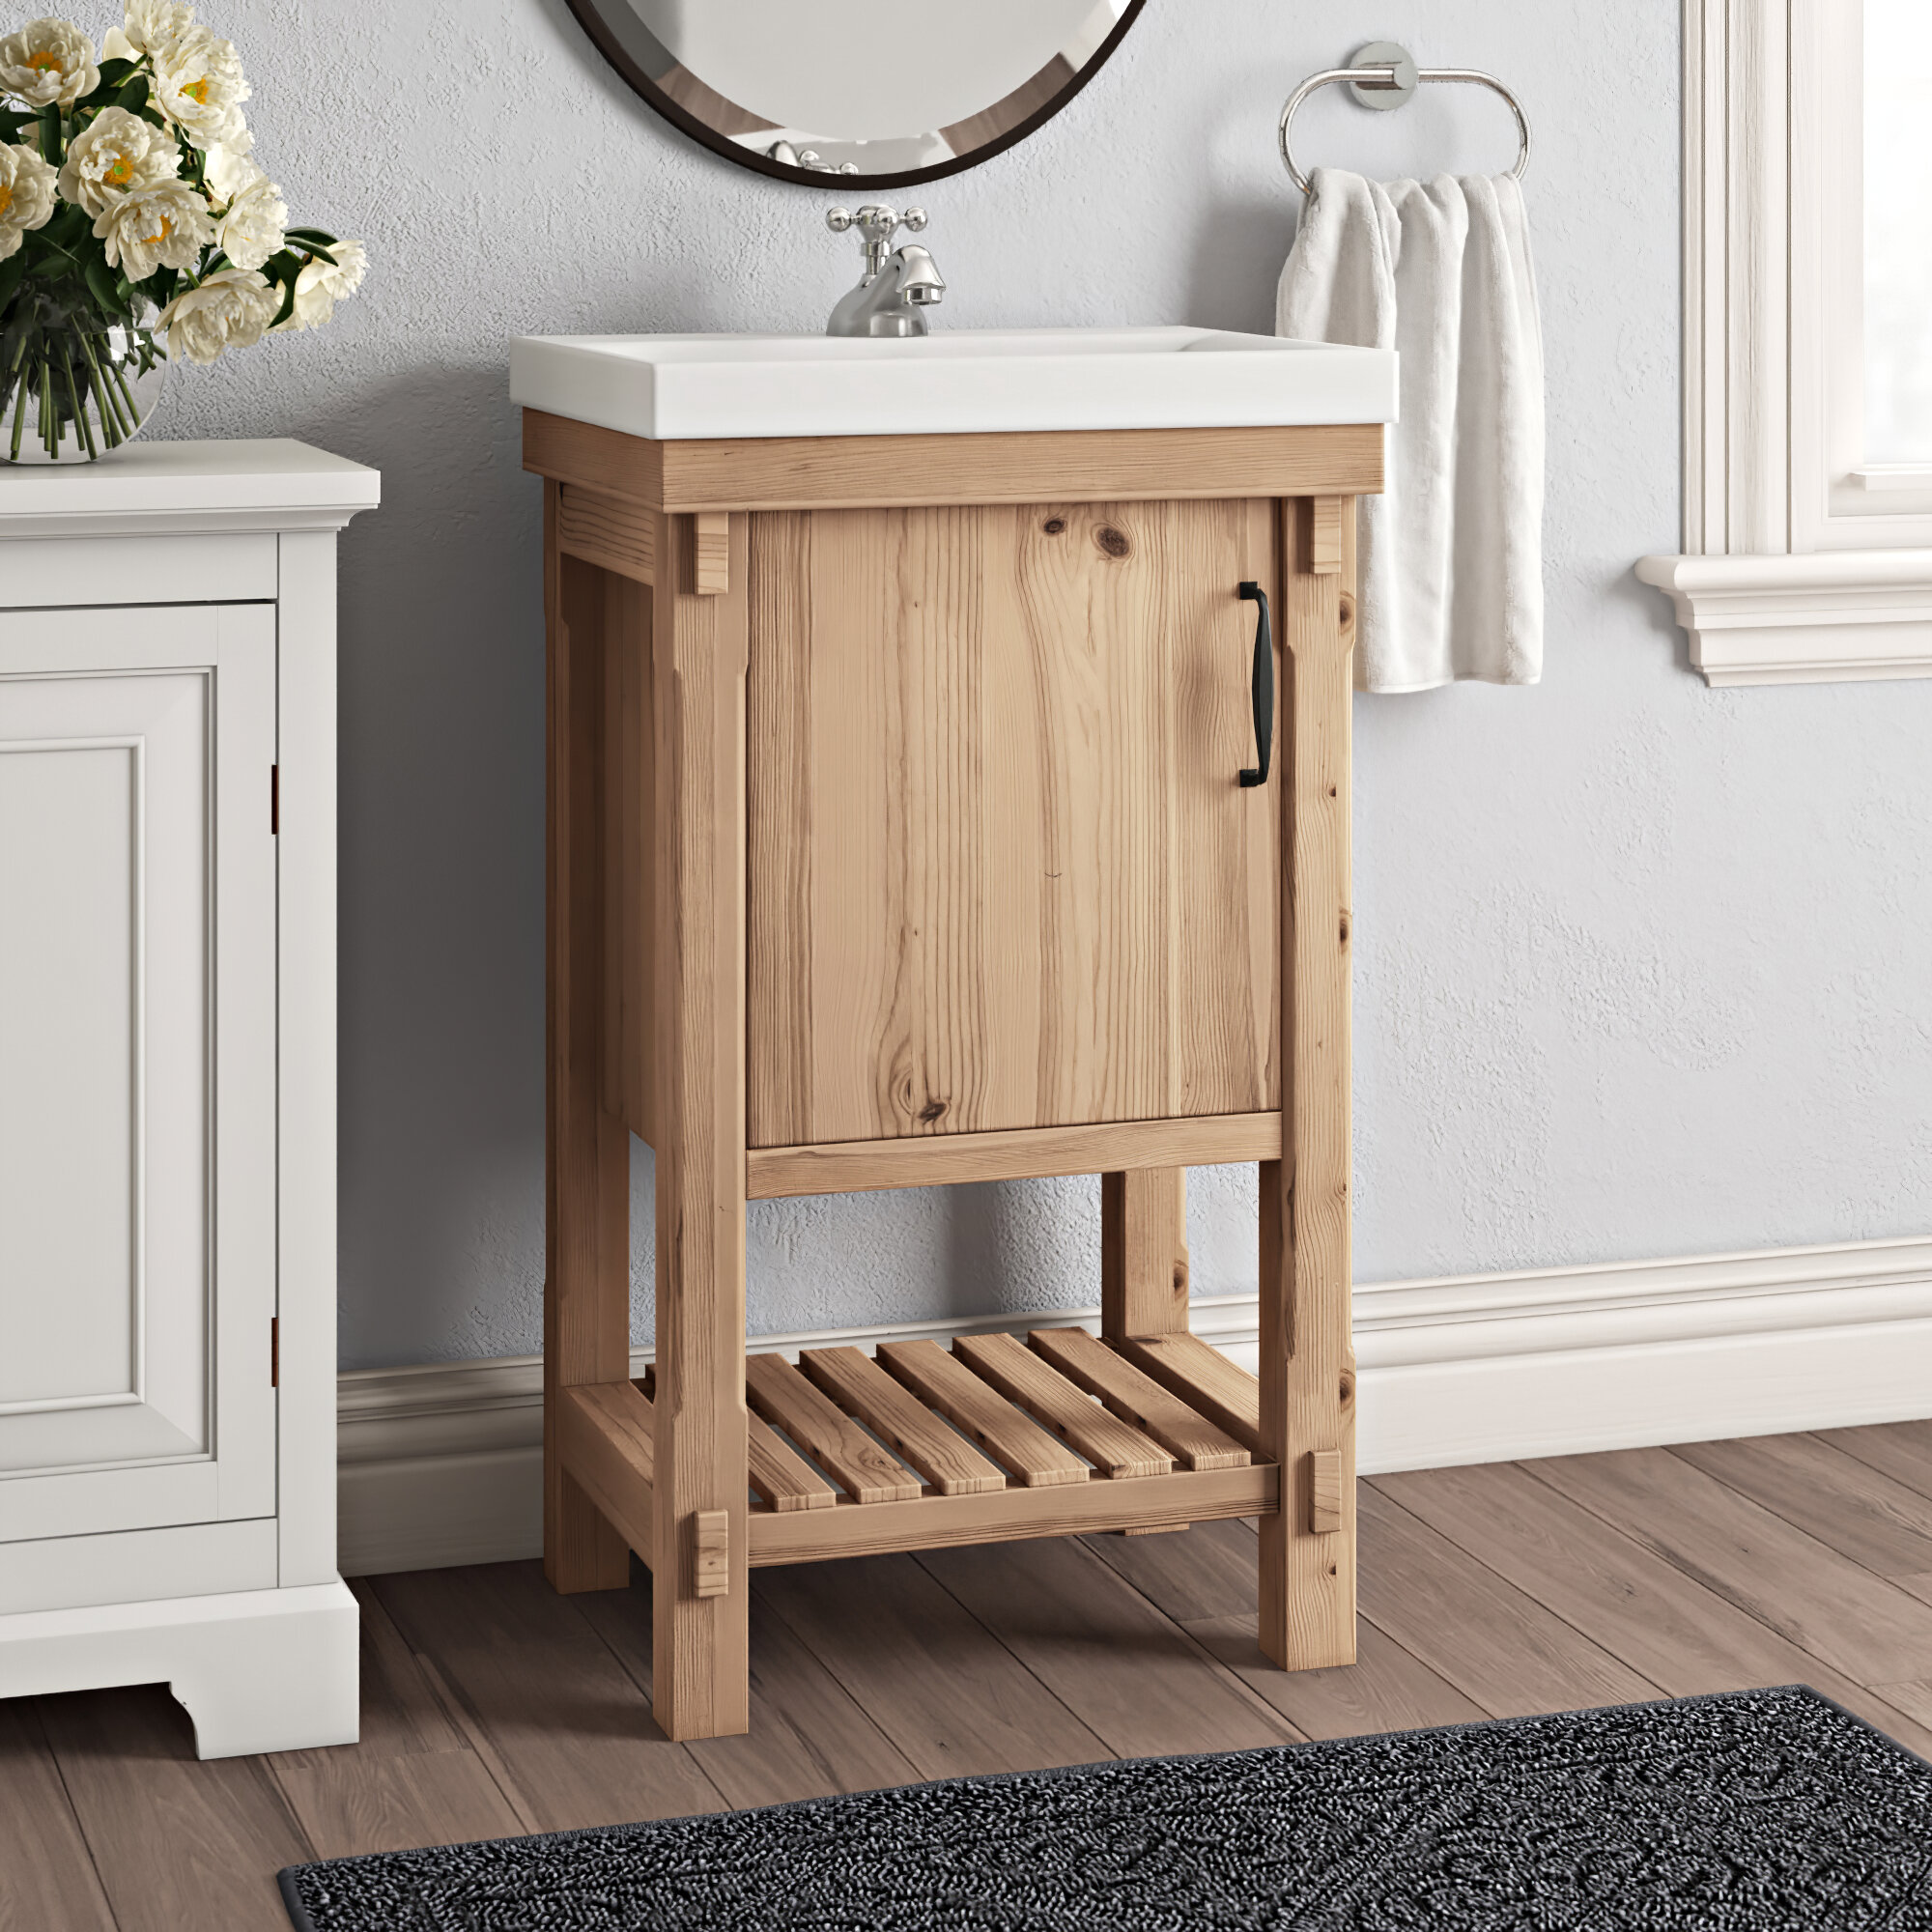 18 Inch Vanities Up To 50 Off Through 04 22 Wayfair